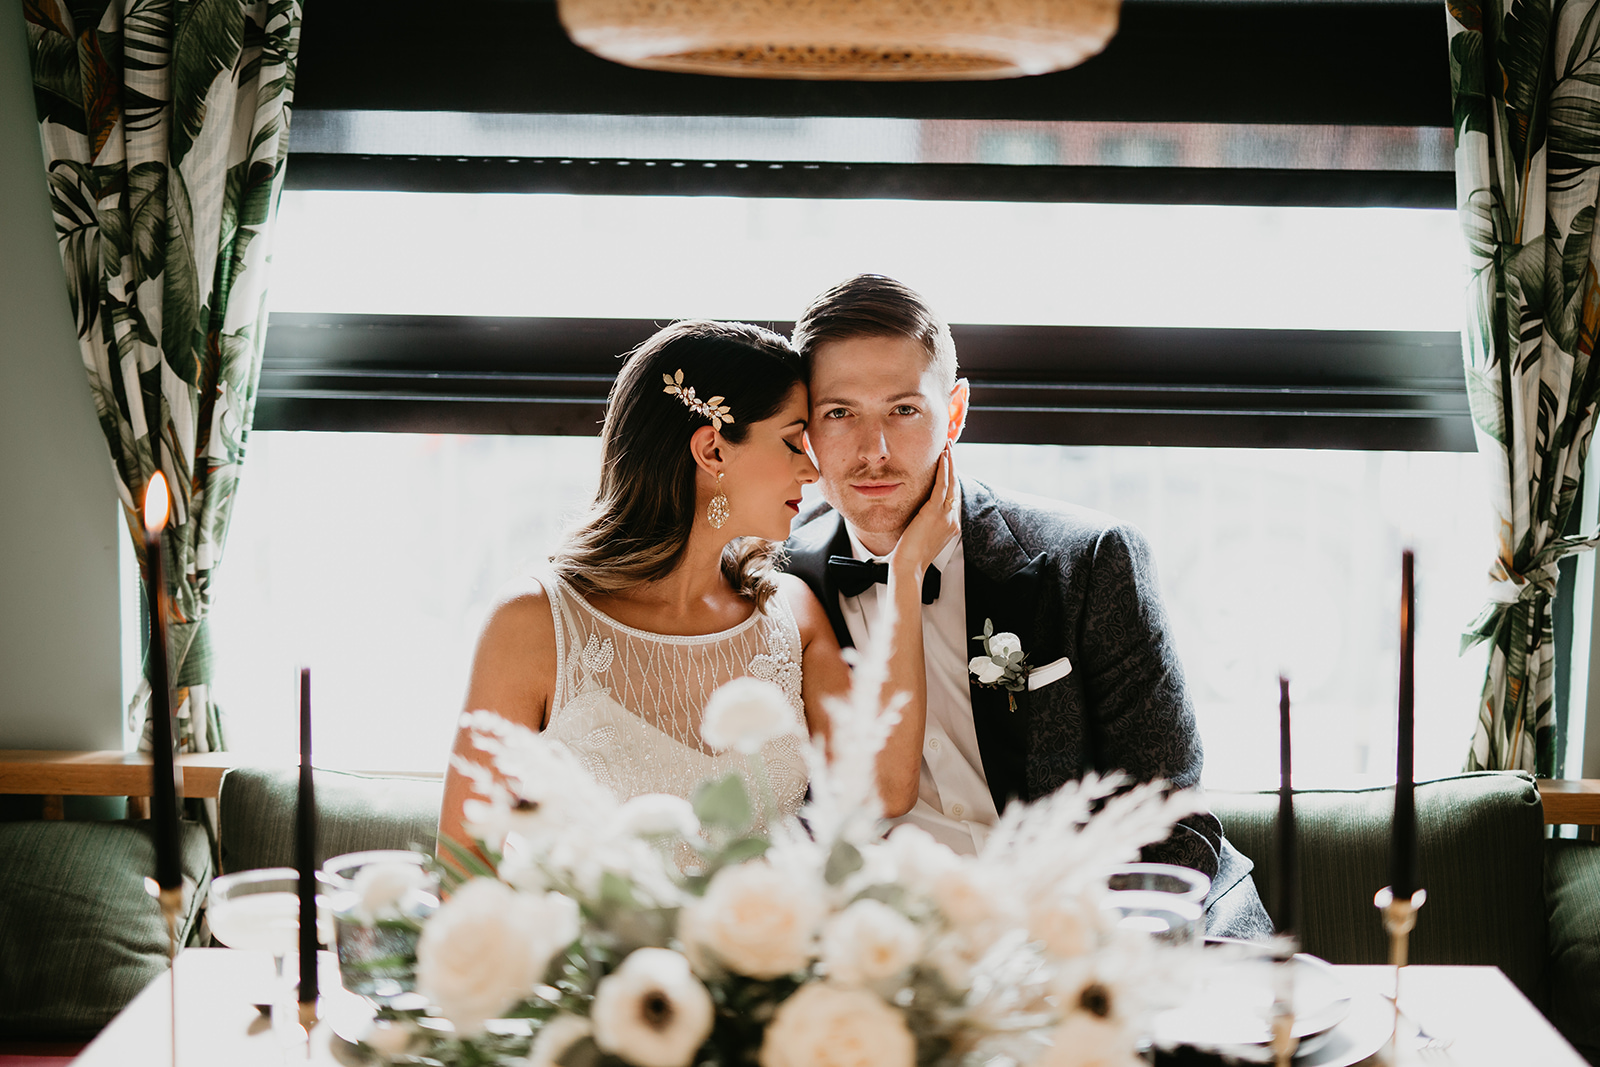 calgary bride and groom wedding photo inspiration